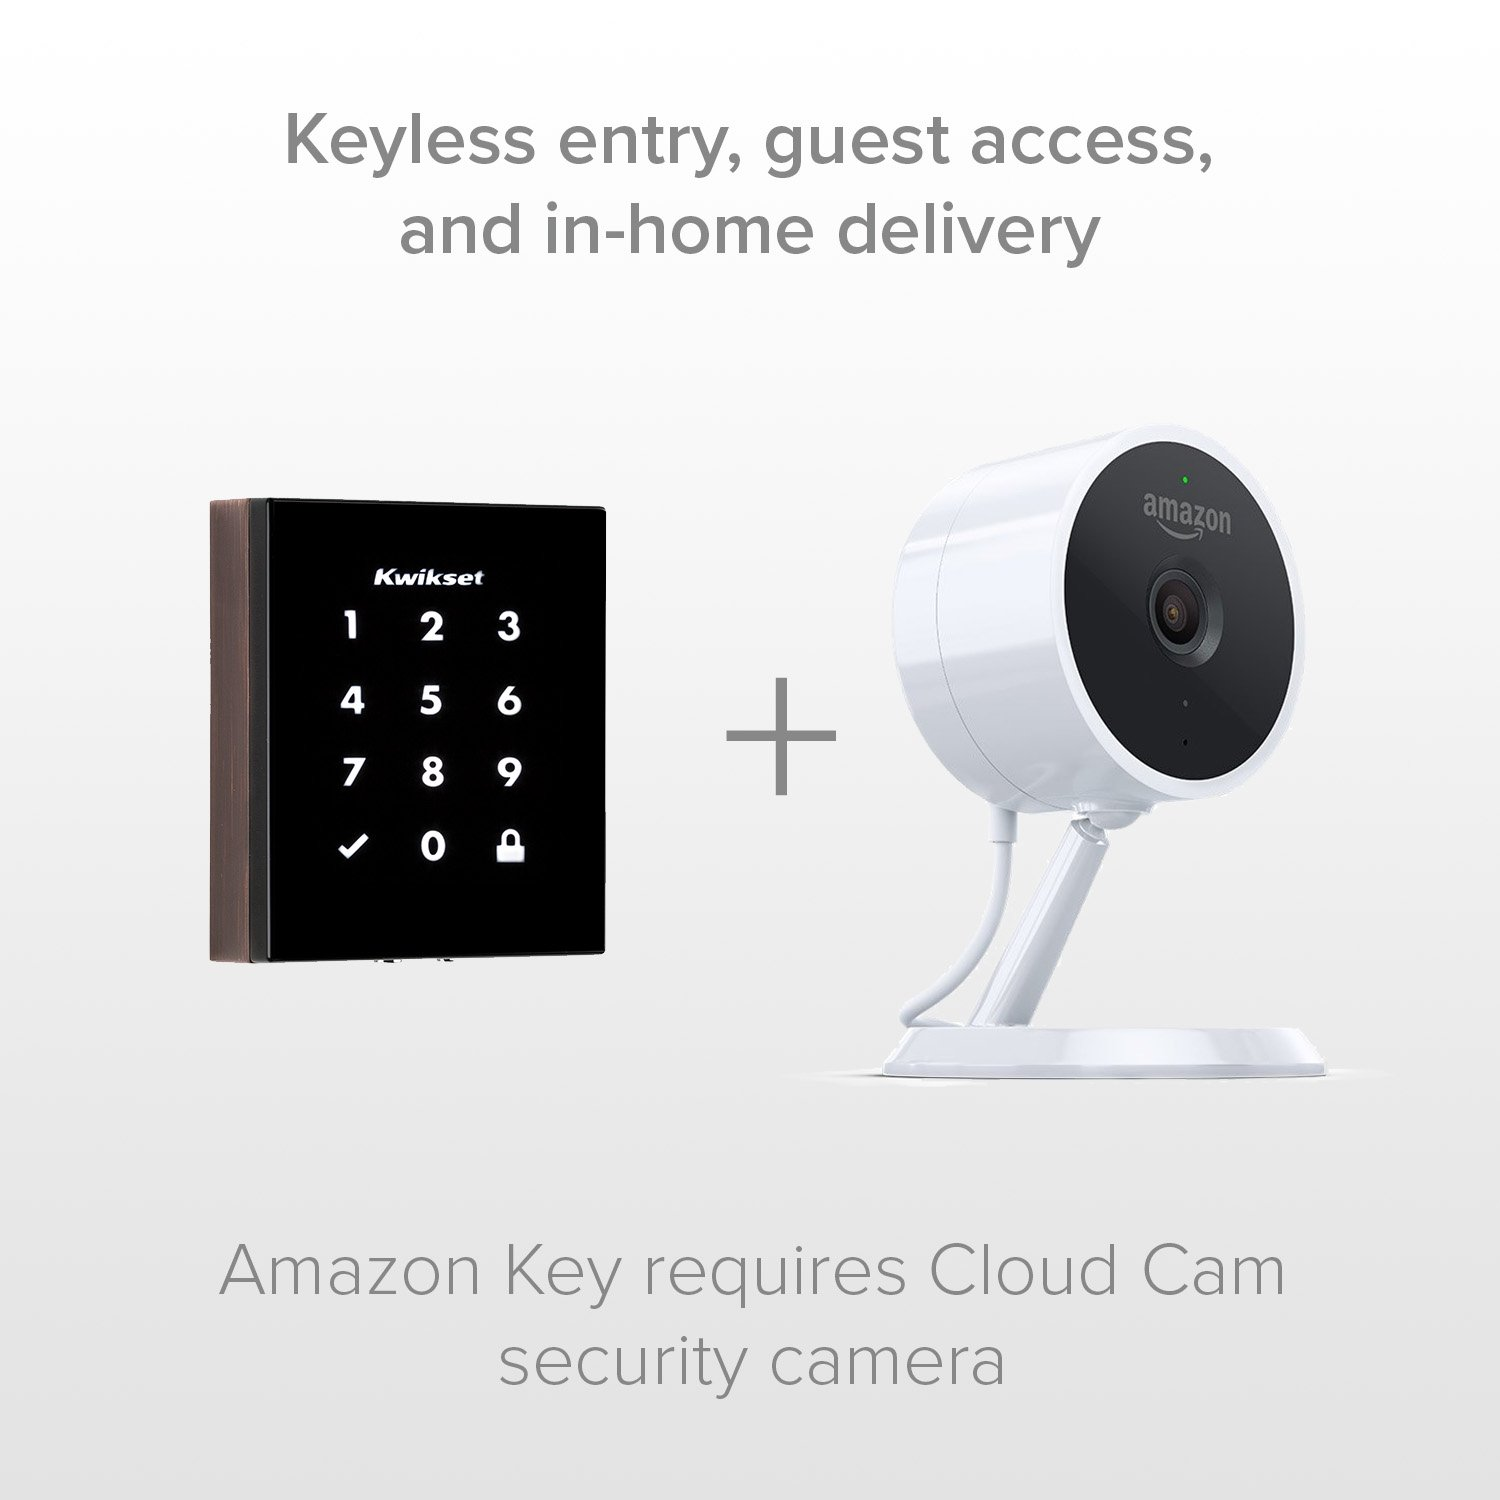 Kwikset Obsidian Keyless Touchscreen Electronic Deadbolt (Amazon Key Edition - Amazon Cloud Cam required) in Venetian Bronze - - Amazon.com